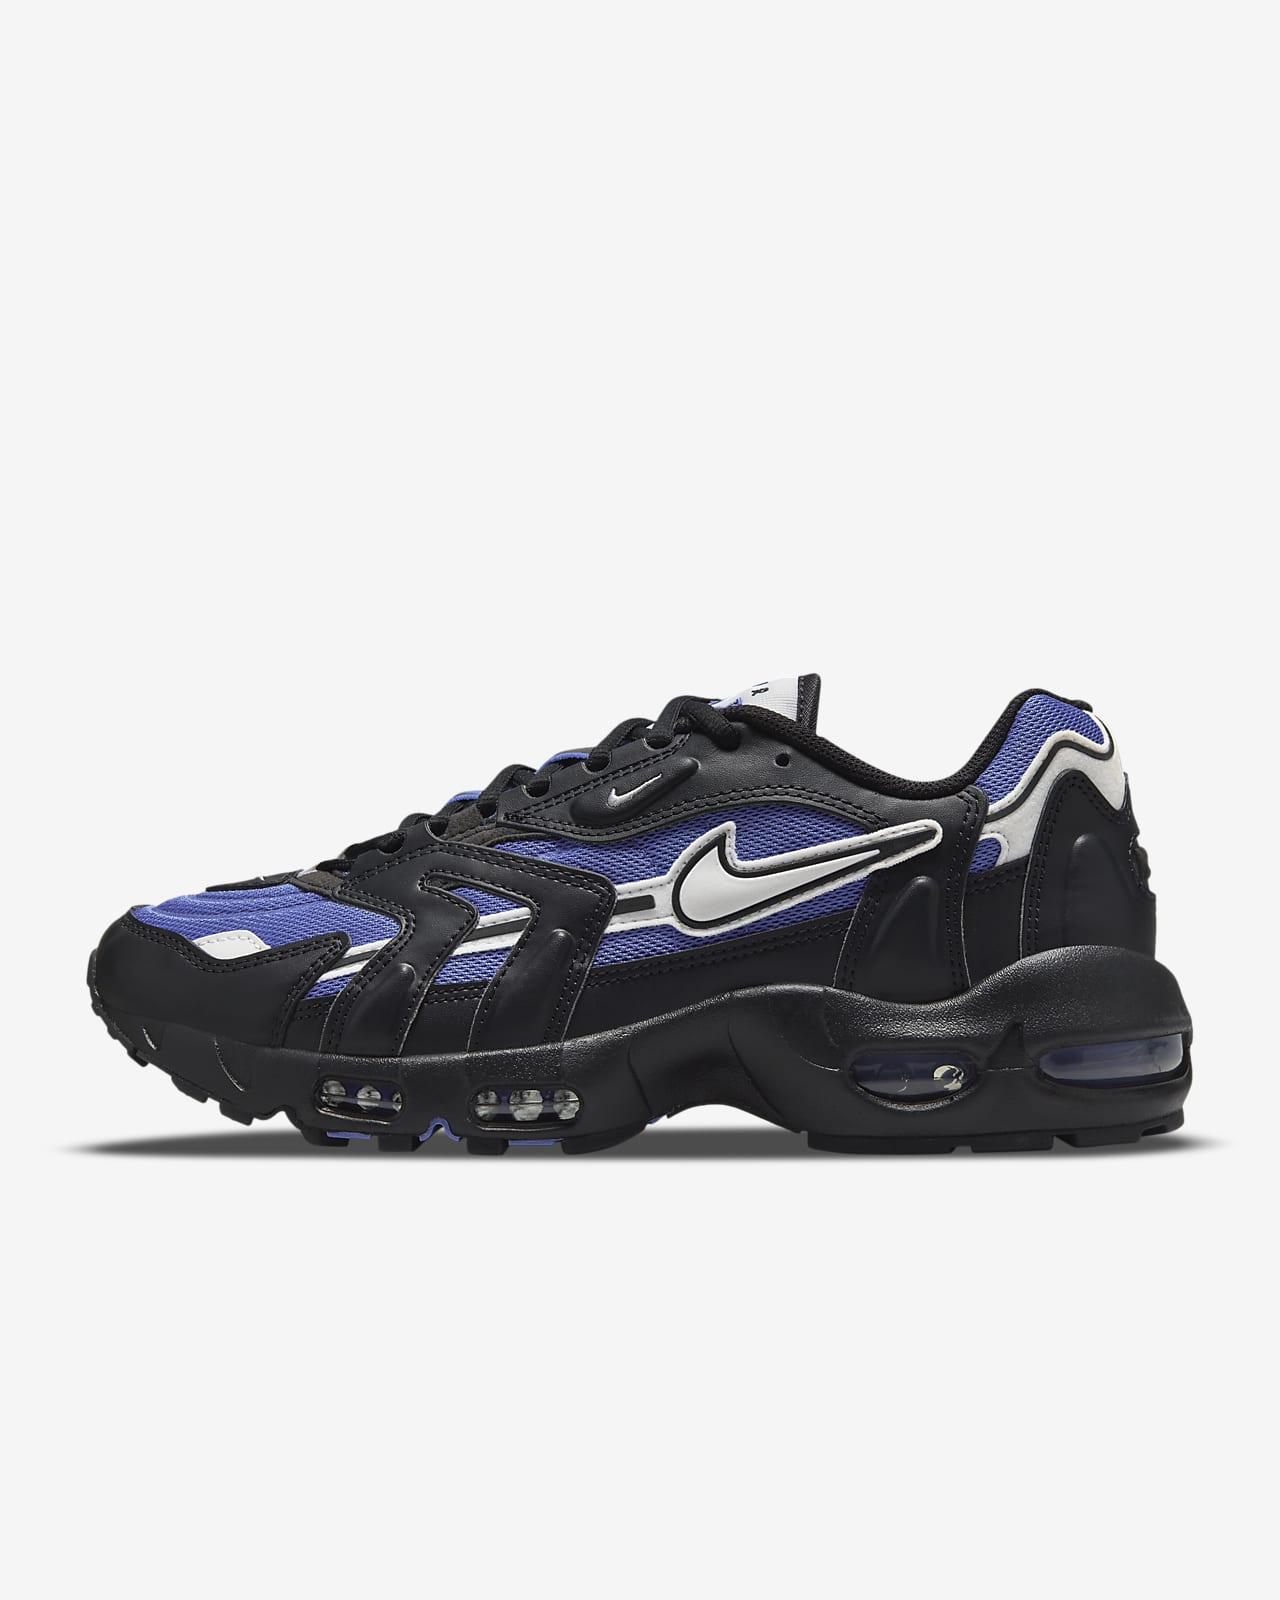 Chaussures Nike Air Max 96 2 pour Homme